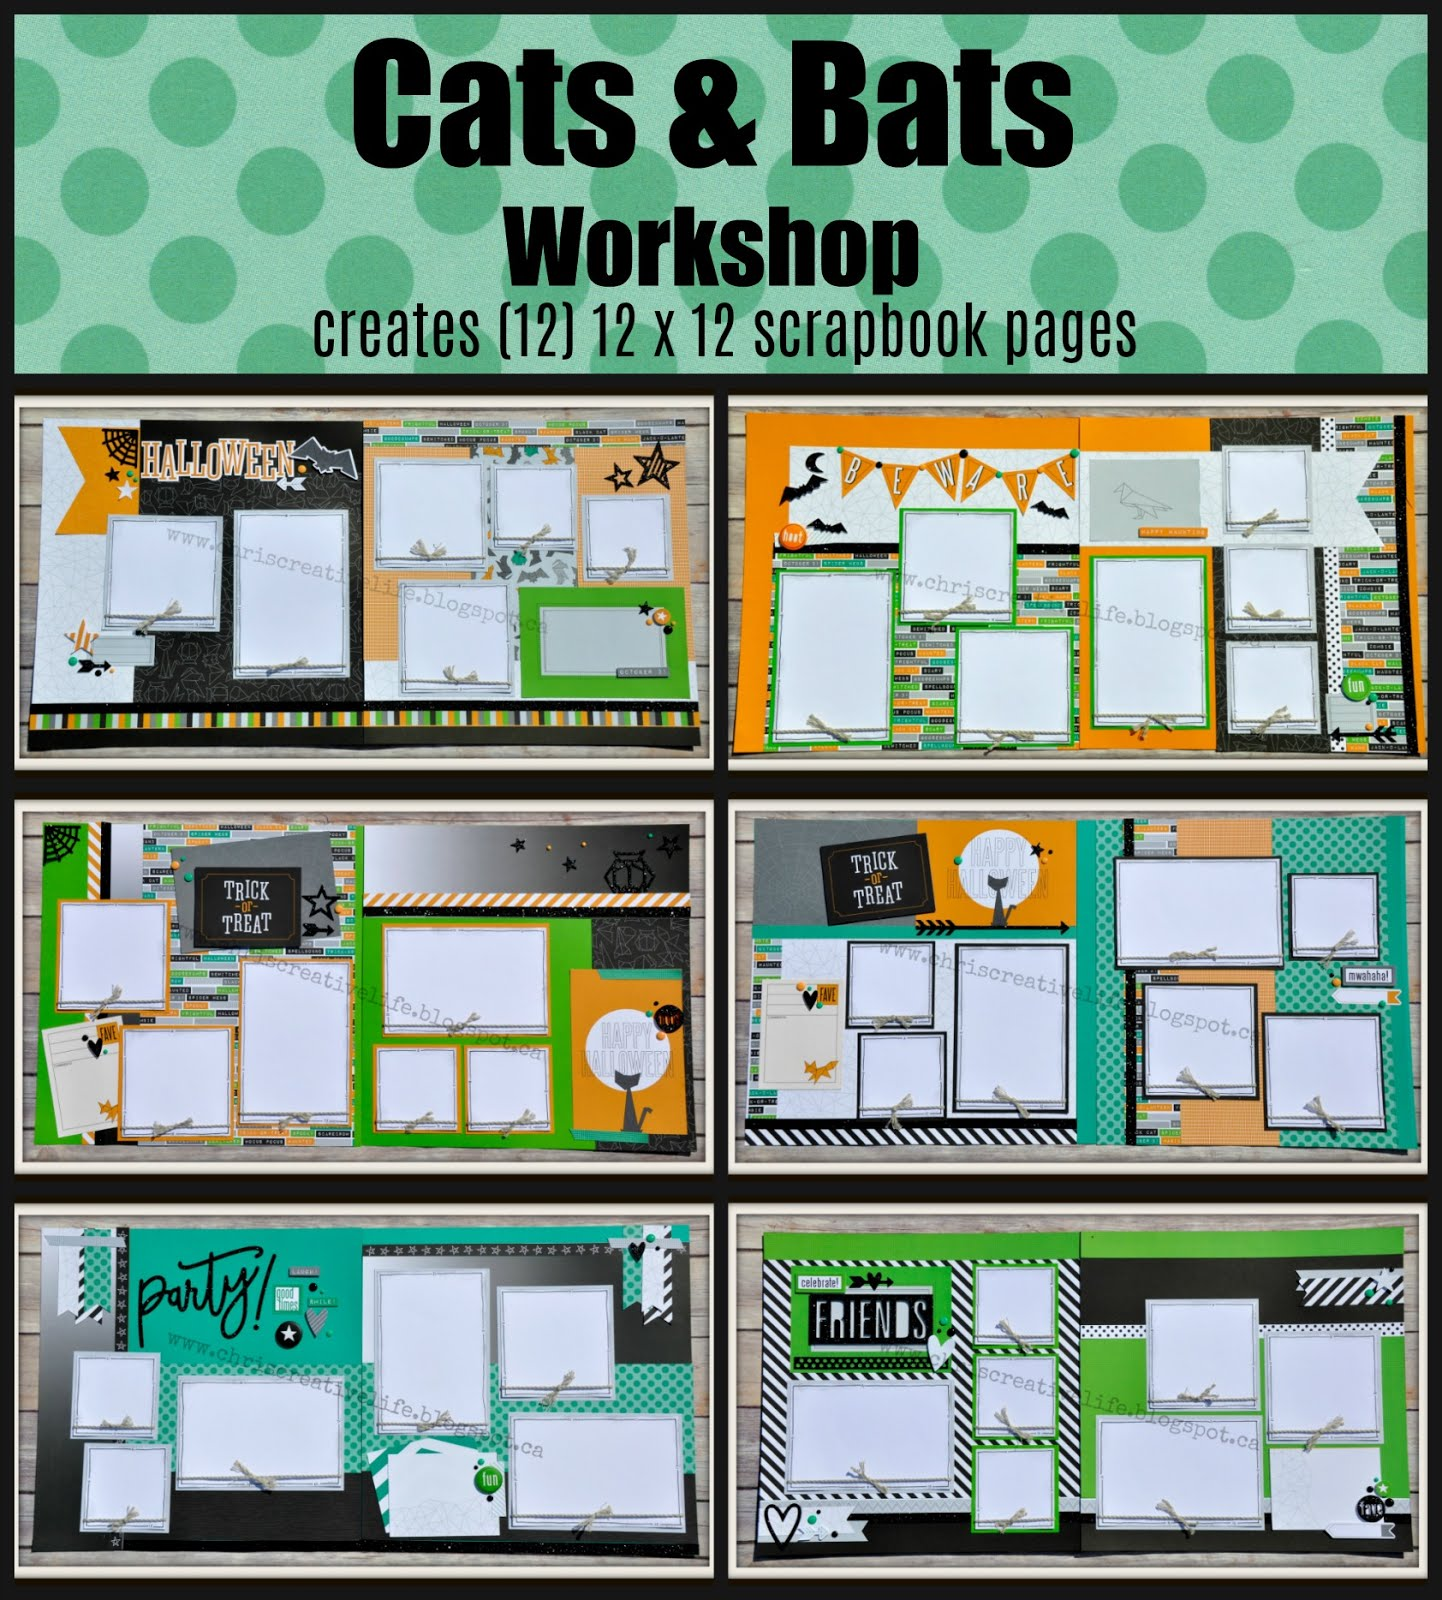 Cats and Bats Workshop